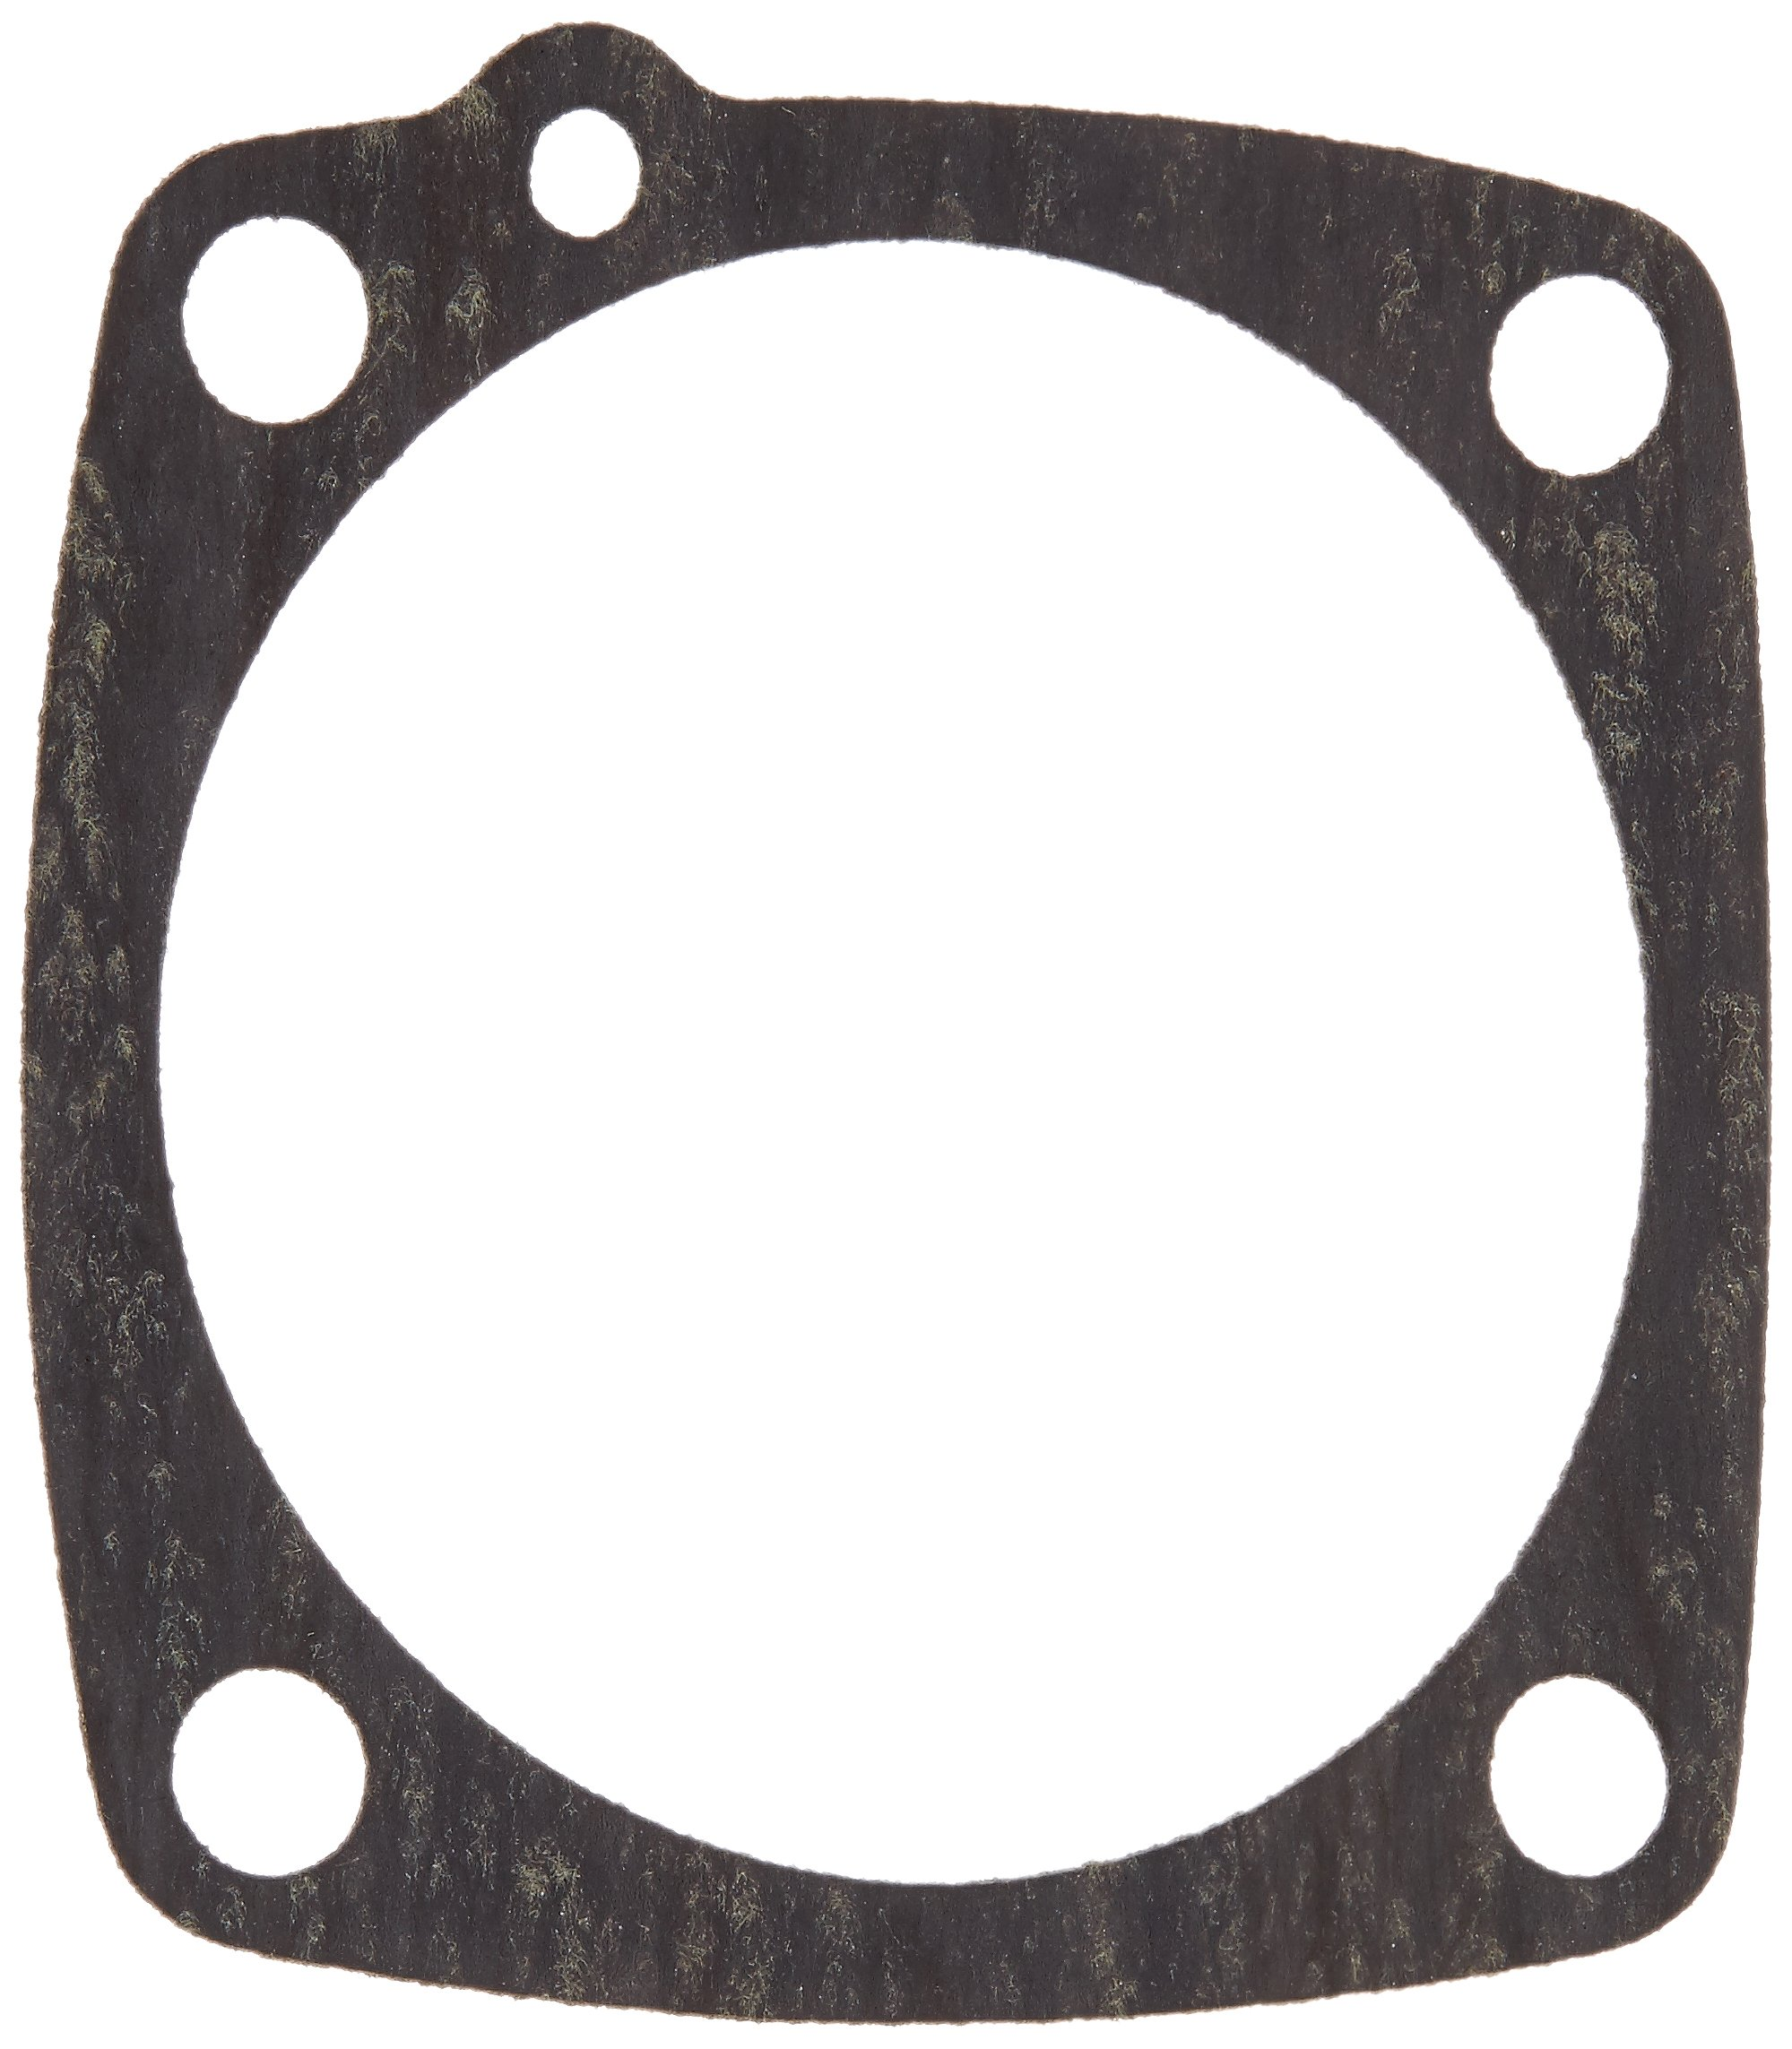 Hitachi 876737 Replacement Part for Gasket Vh650